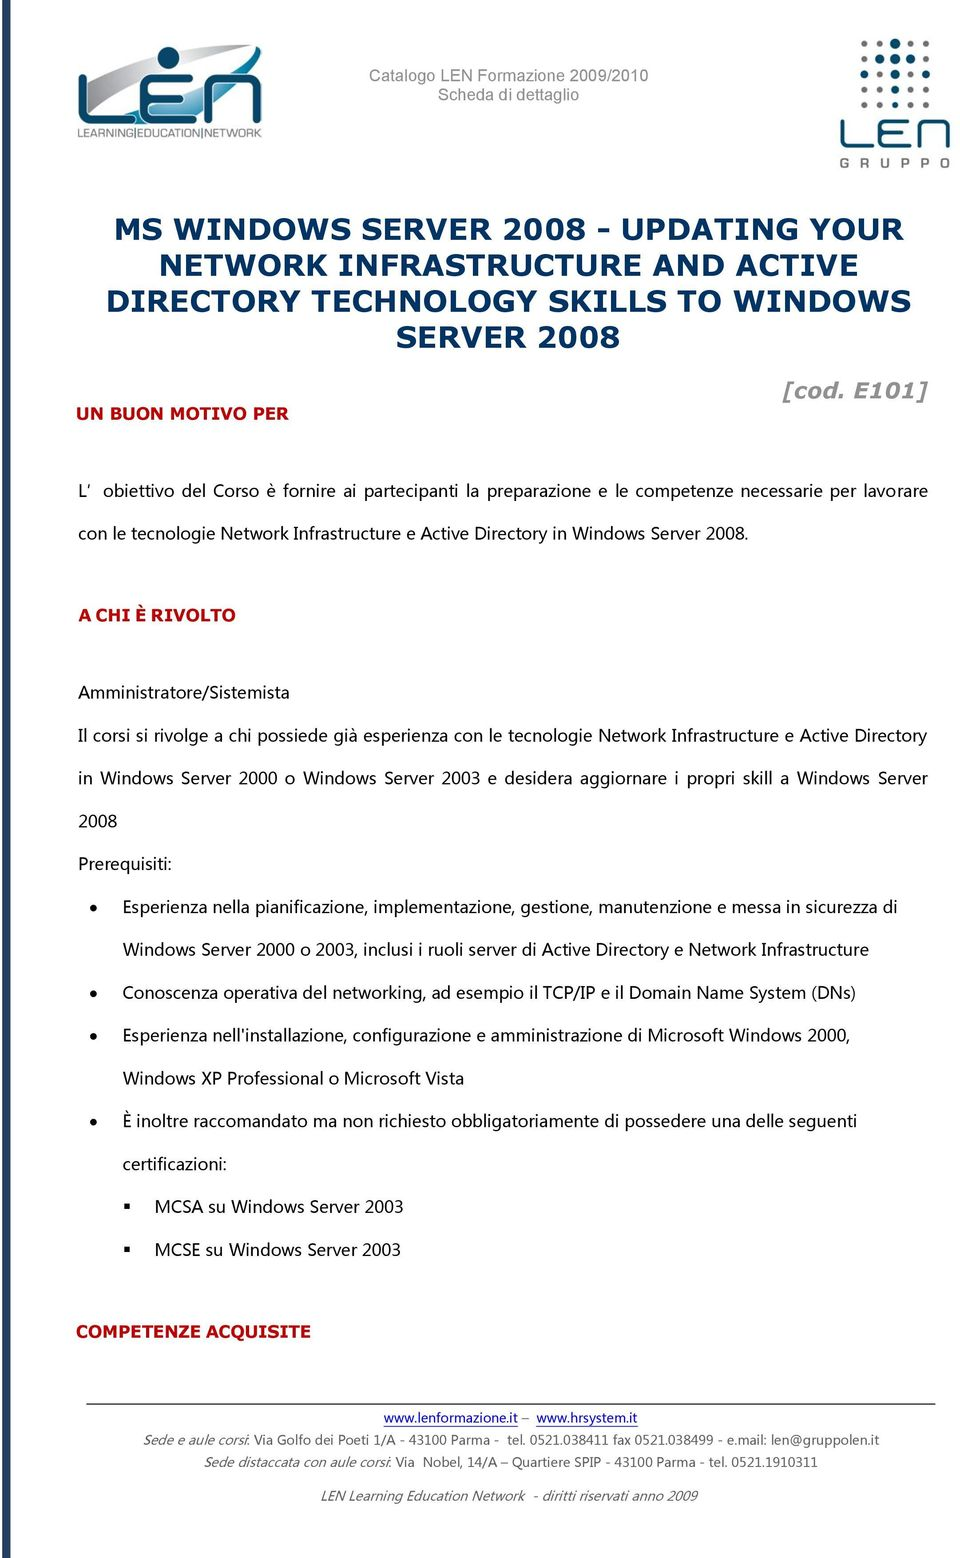 A CHI È RIVOLTO Amministratore/Sistemista Il corsi si rivolge a chi possiede già esperienza con le tecnologie Network Infrastructure e Active Directory in Windows Server 2000 o Windows Server 2003 e